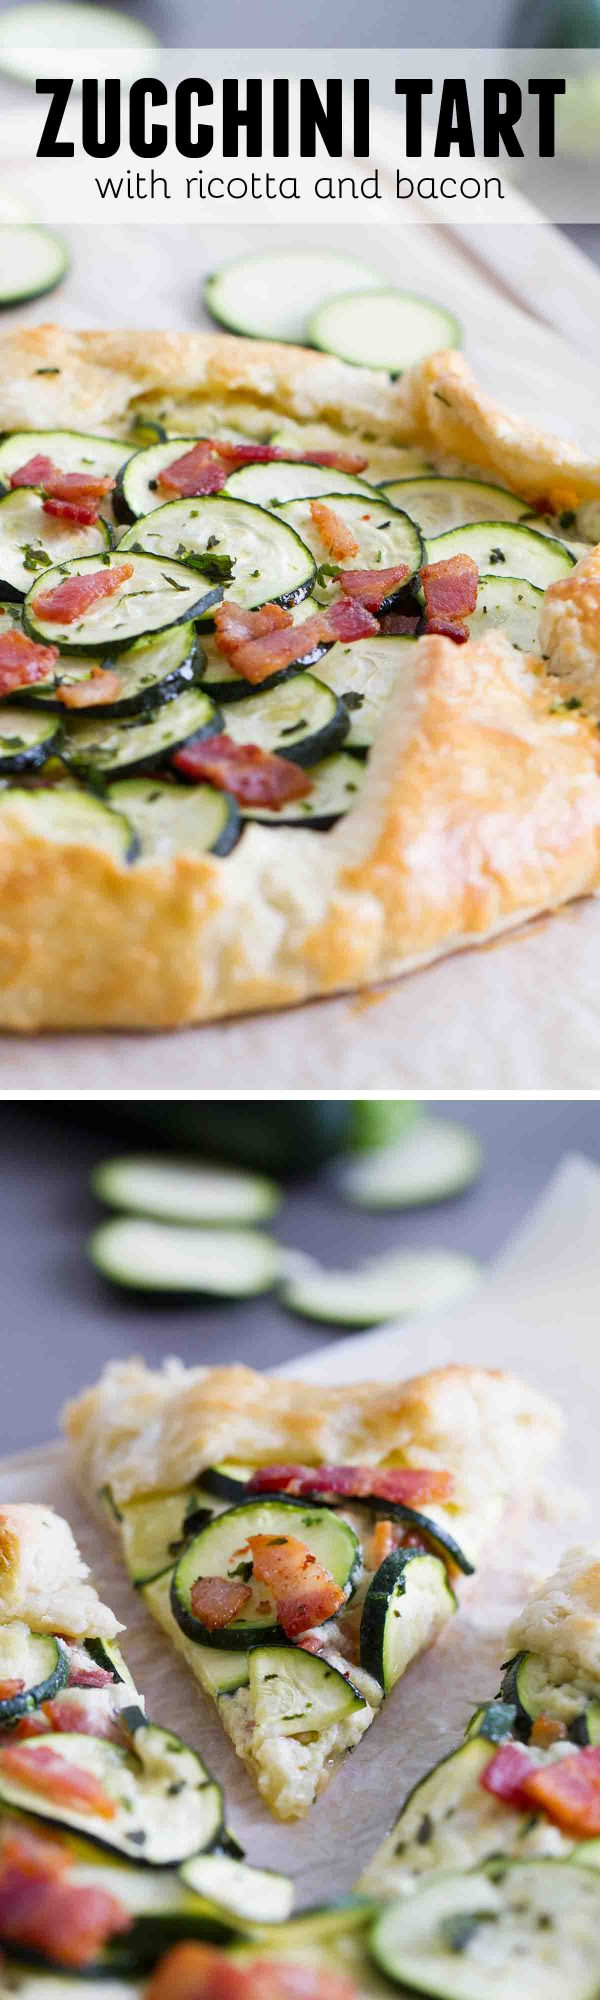 A tender, flaky crust is filled with a creamy ricotta filling, then topped with bacon and zucchini in this easy Zucchini Tart with Ricotta and Bacon that is perfect for a luncheon or a light dinner.